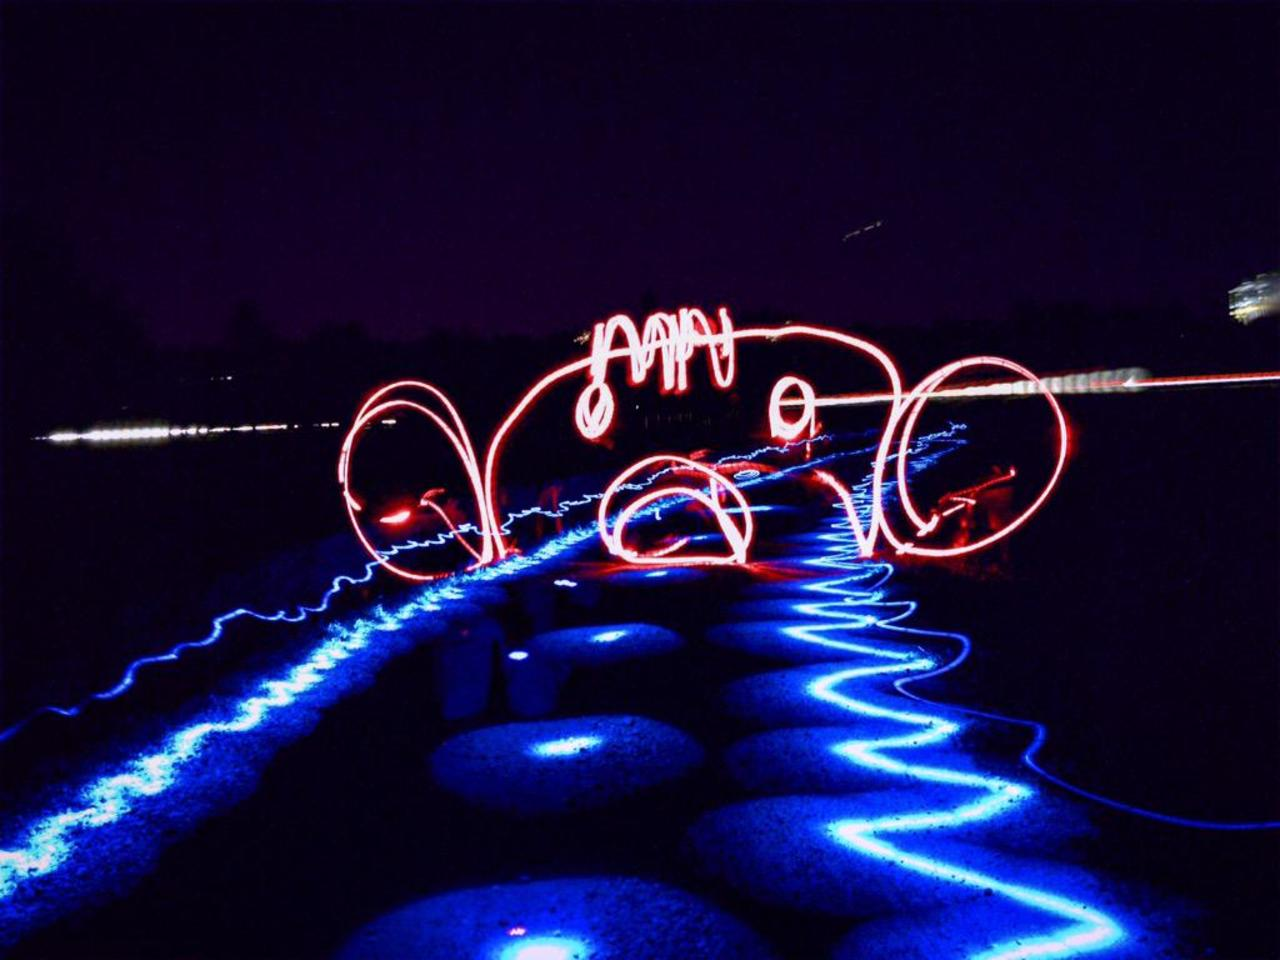 #light #river #P8NocniSvet #lightart #lightdrowing #lightpainting #ring #red #ballons #blue #night #city #face http://t.co/tw7BdCxwDE